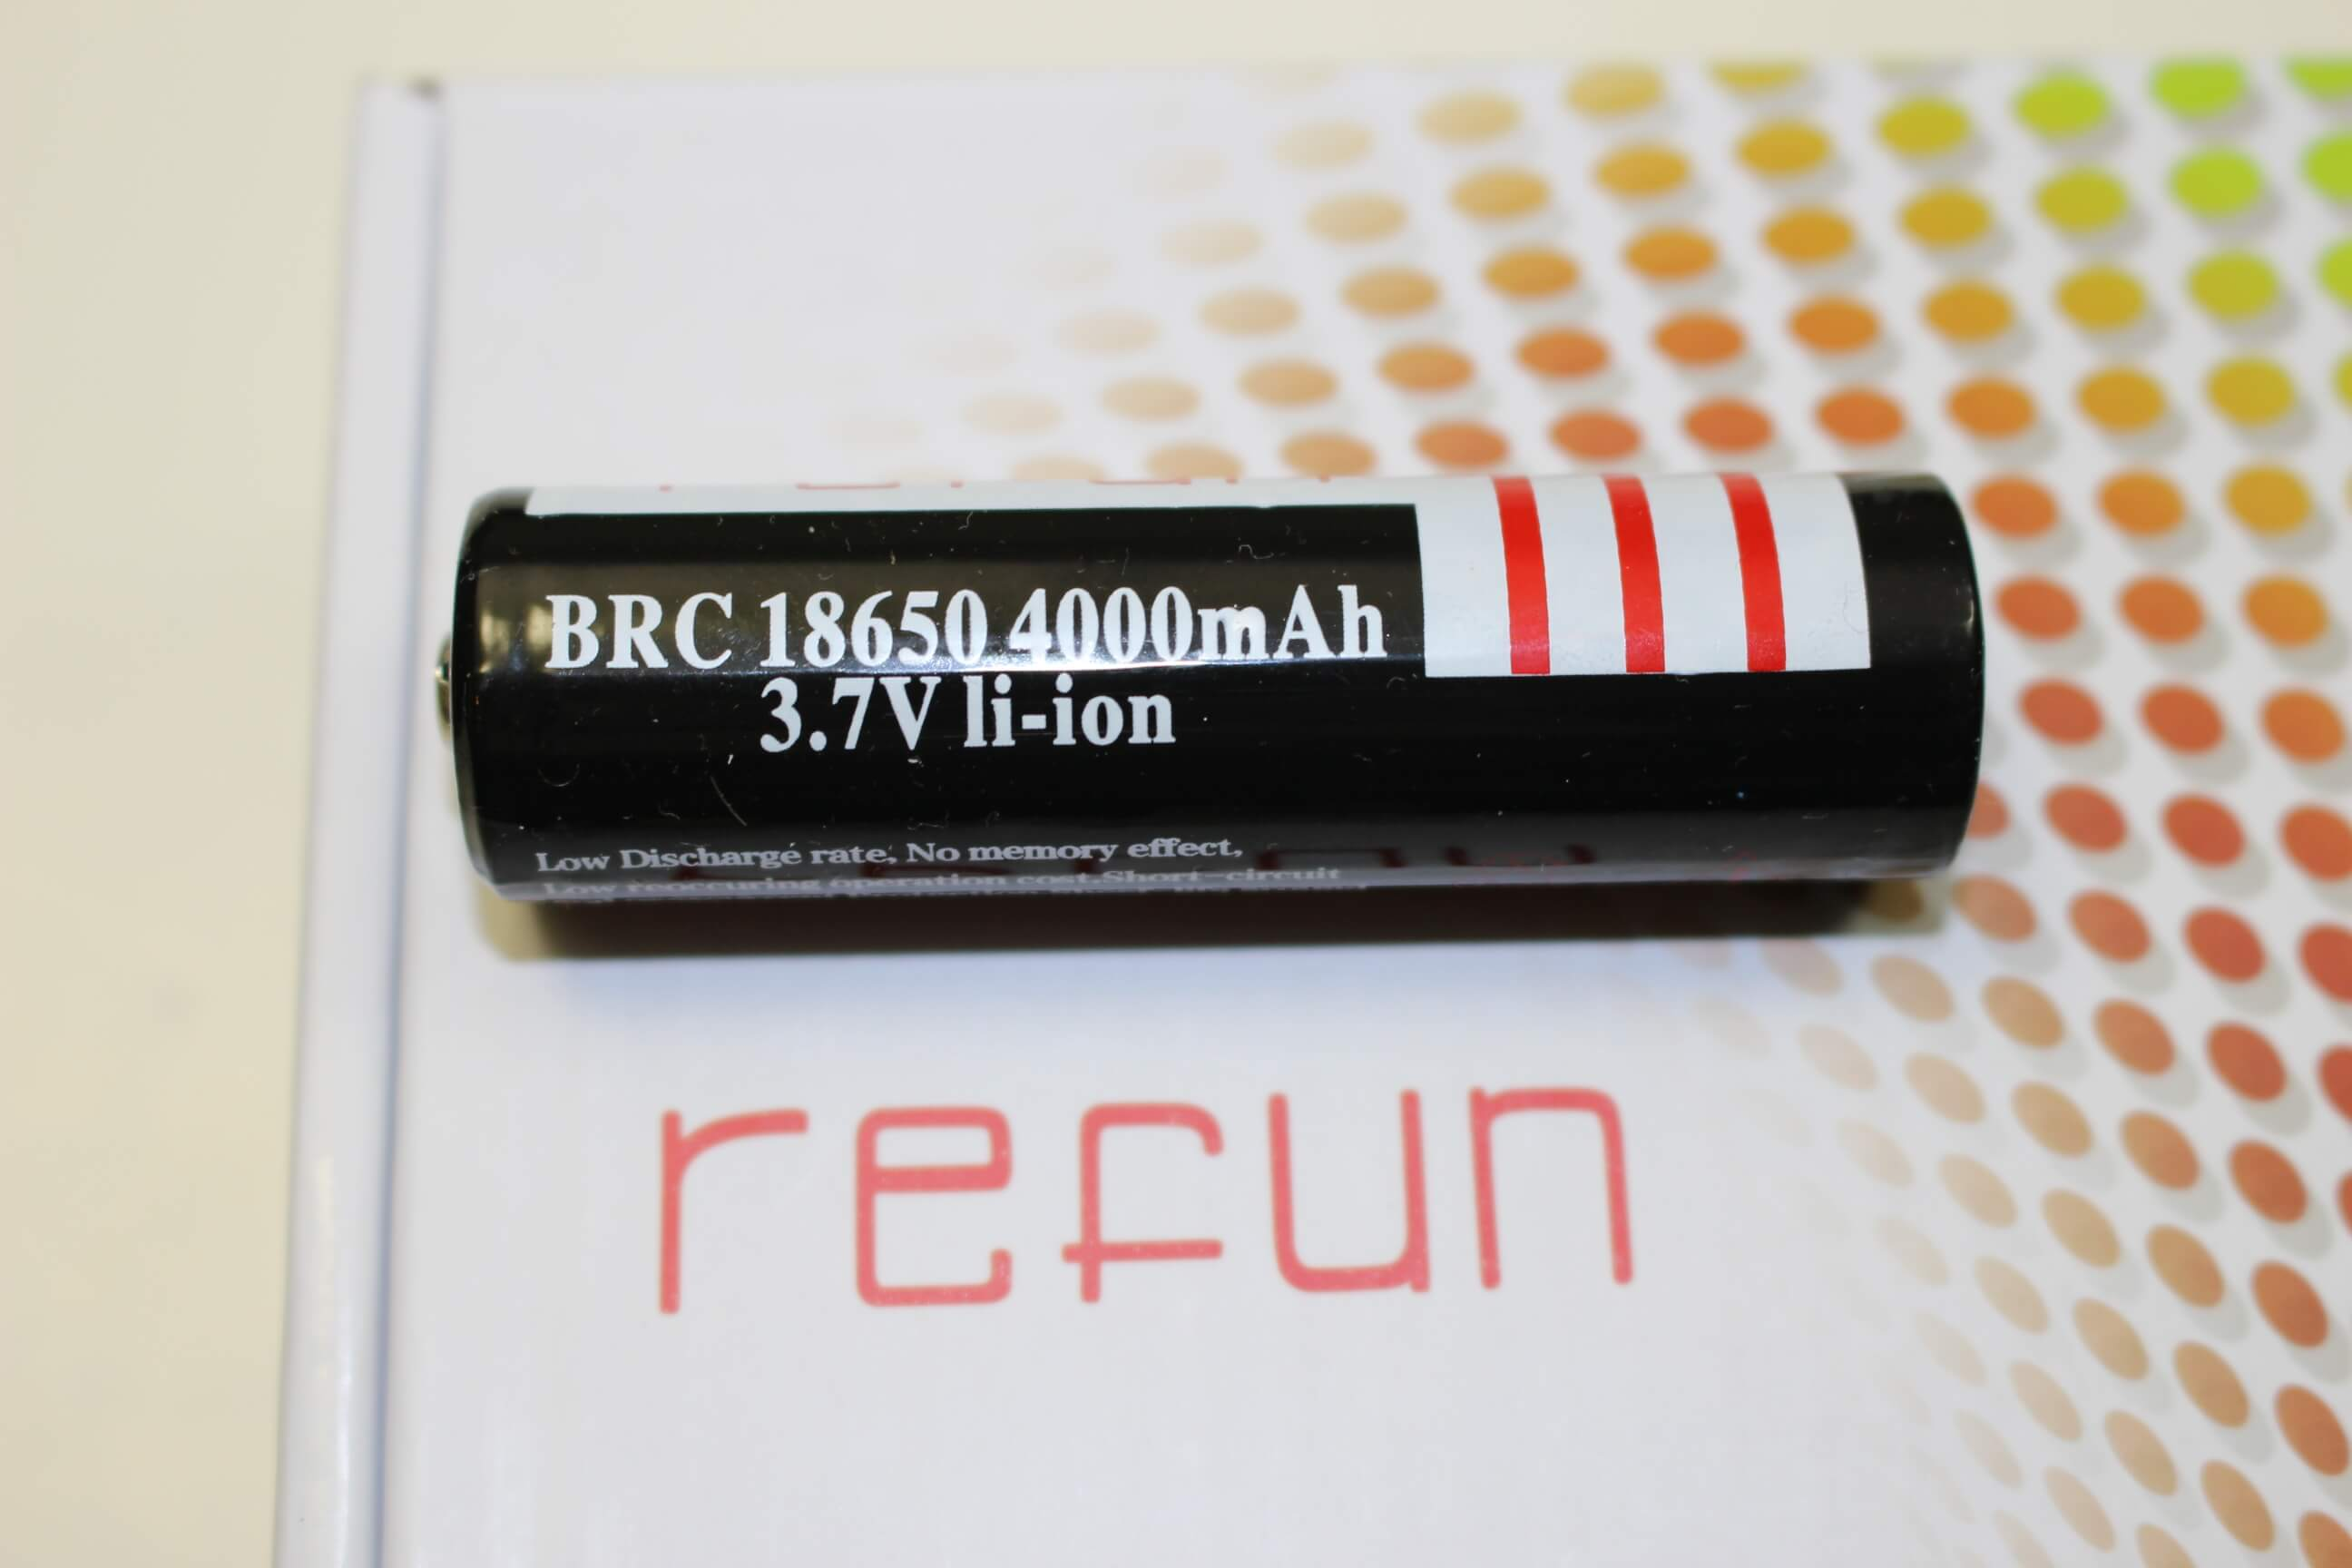 Refun A100 Focusing Led Flashlight Review